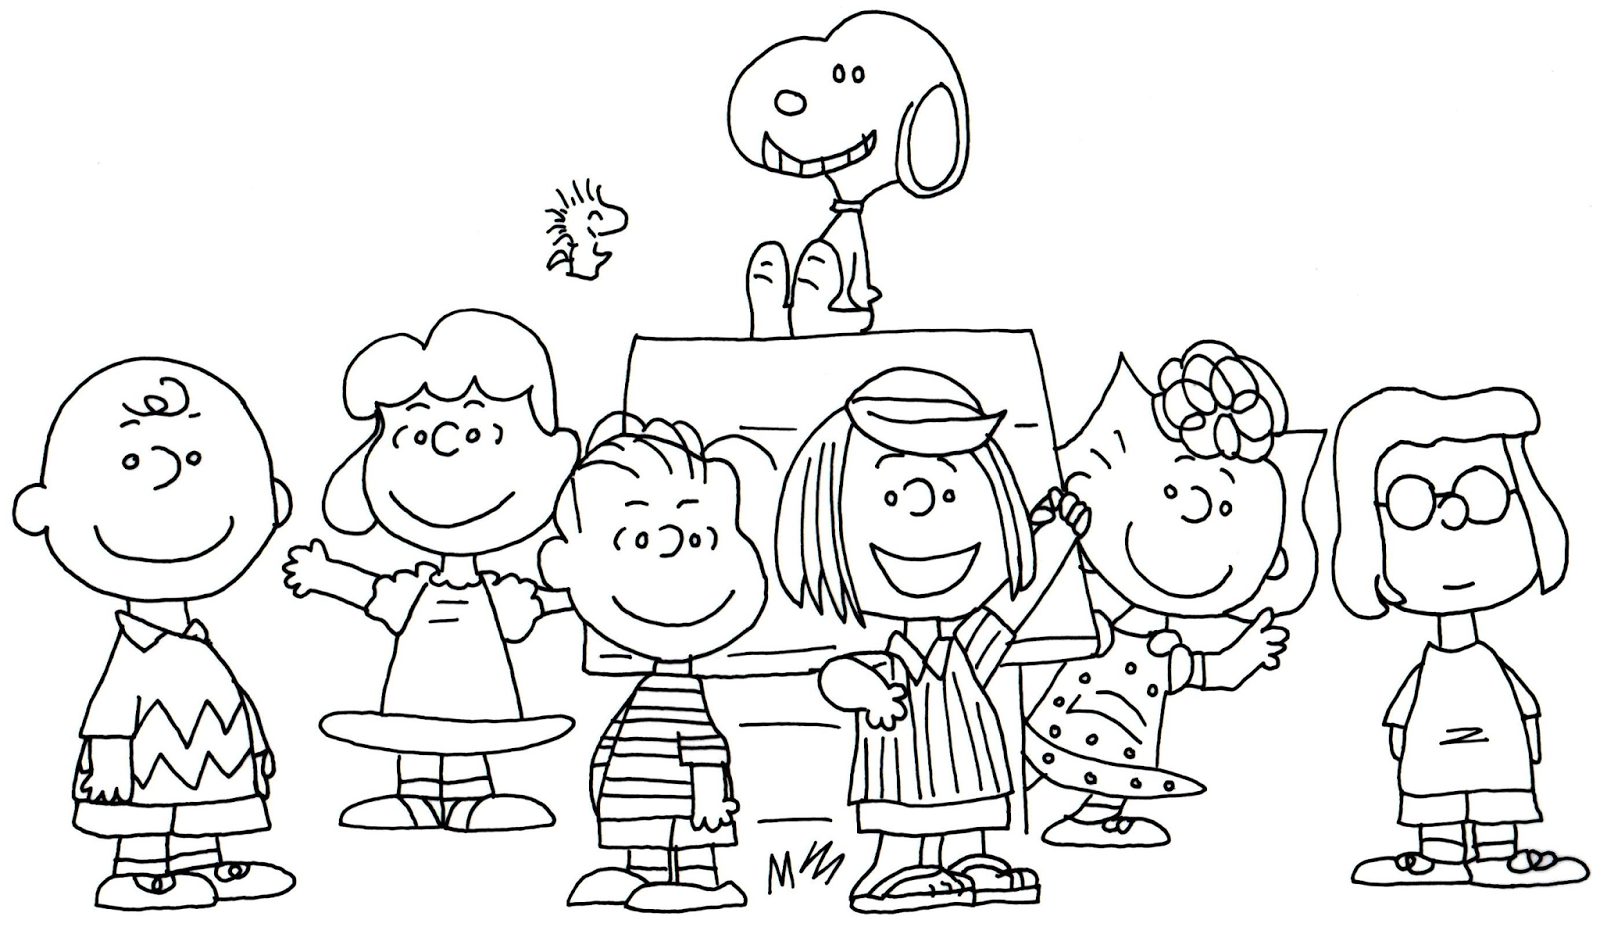 Woodstock Drawing at GetDrawings.com   Free for personal use ...